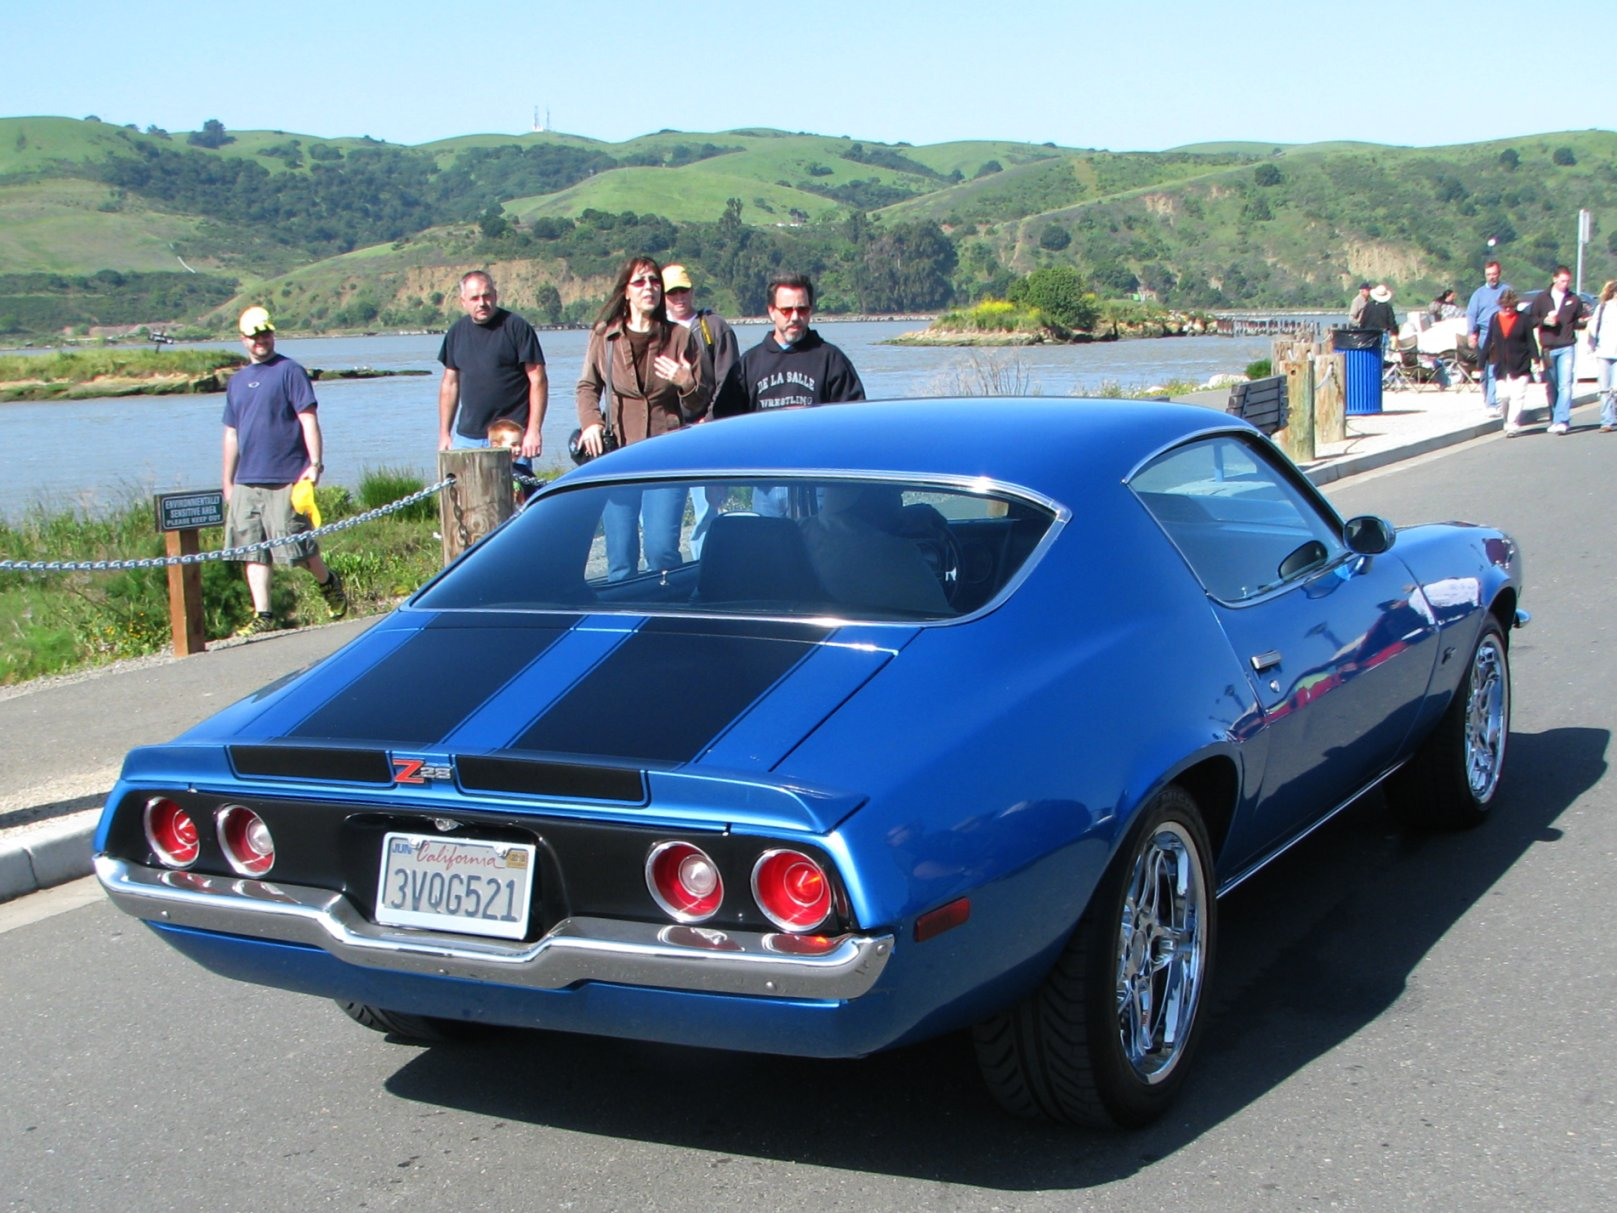 1970 Chevrolet Camaro Z28 (Custom) '3VQG521' 2 | Flickr - Photo ...